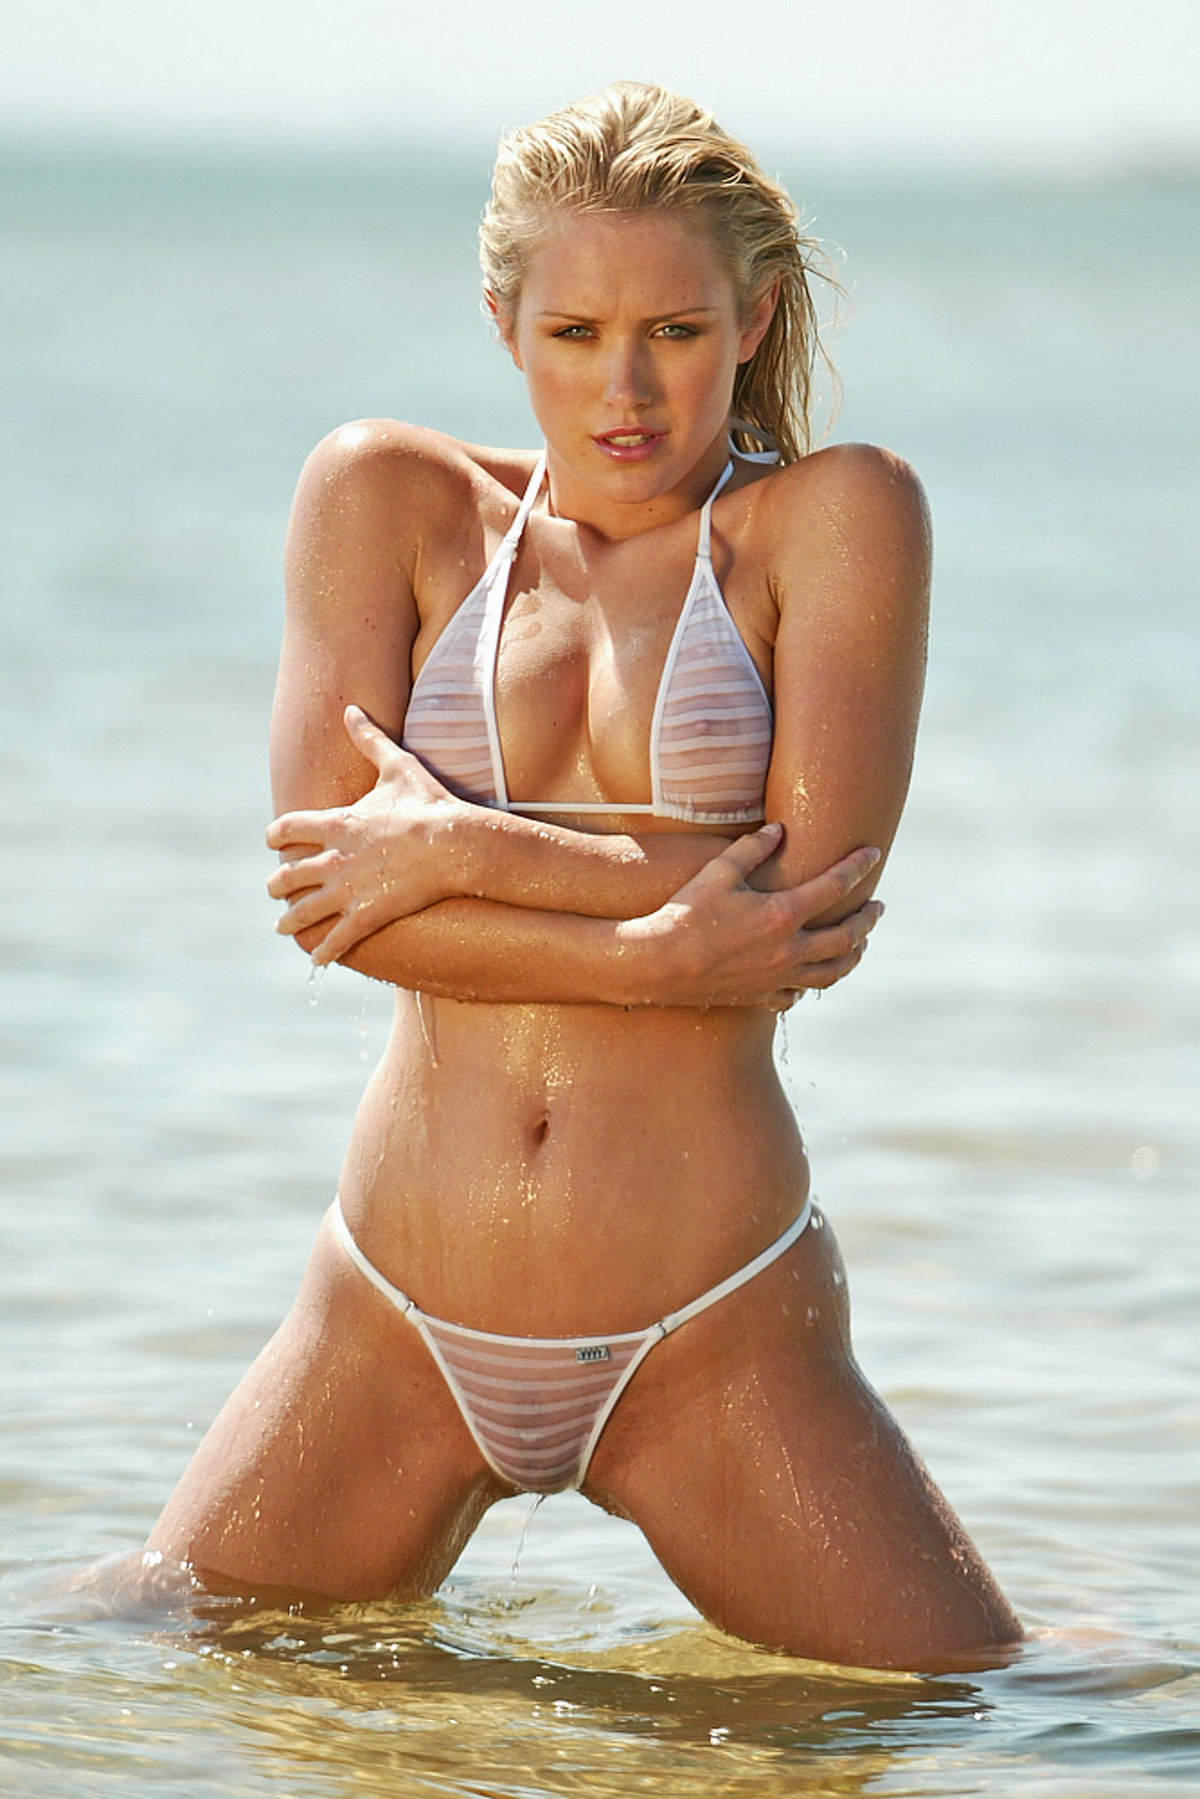 swimsuit pics through See